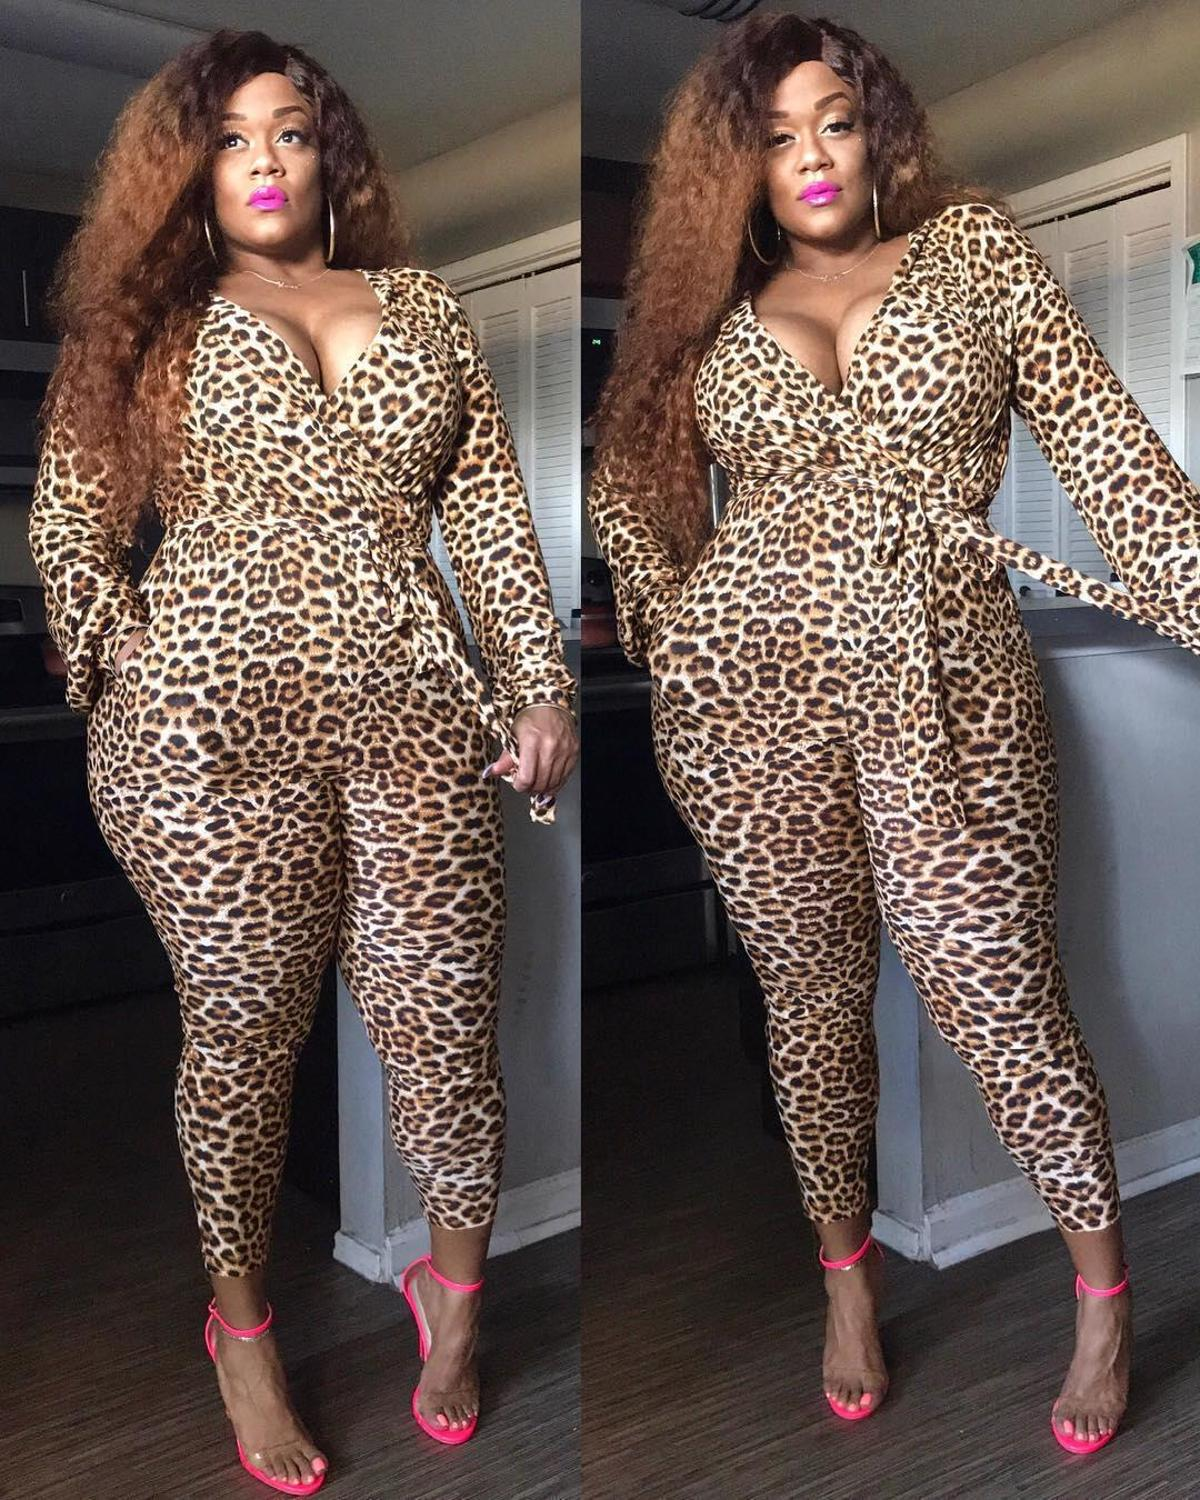 V-Neck Full Sleeve Leopard Print with Sash Tie Jumpsuits